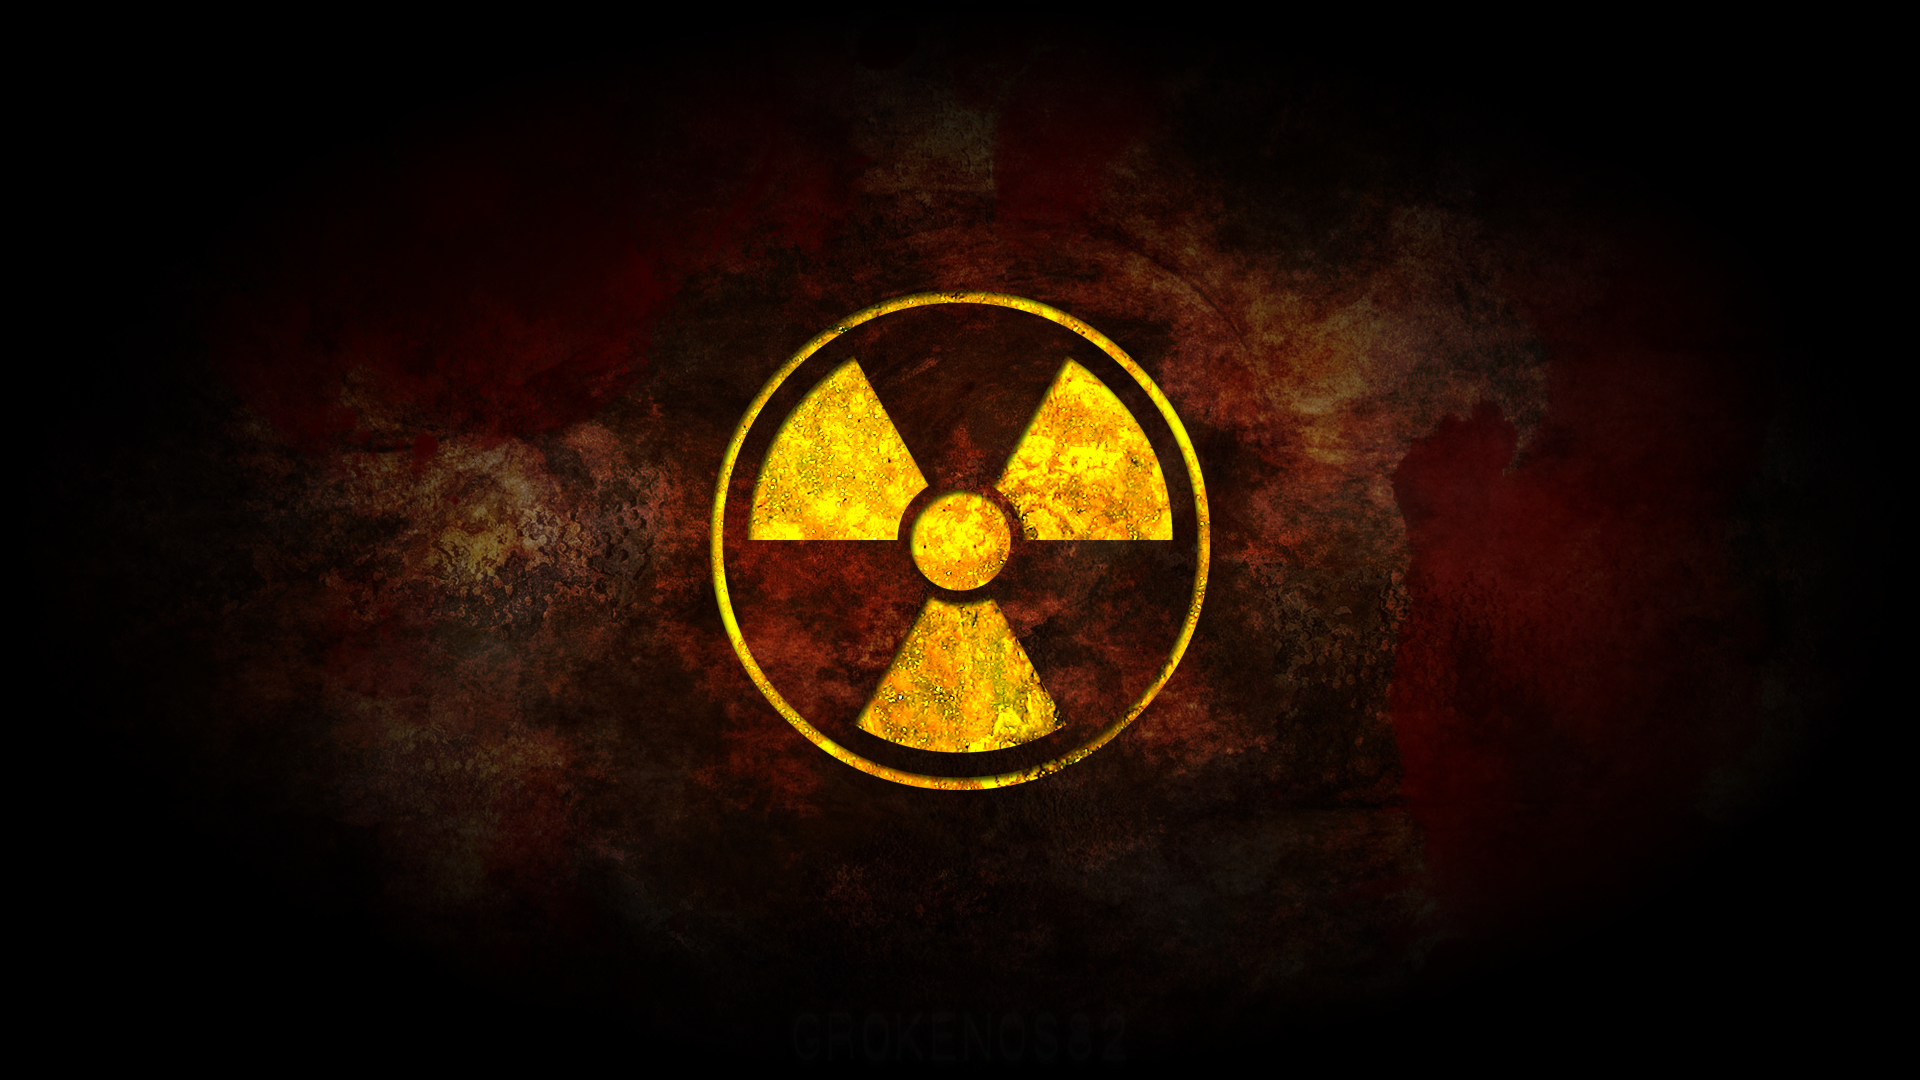 Hd wallpaper radioactive by grokenos82 on deviantart for Deviantart wallpaper